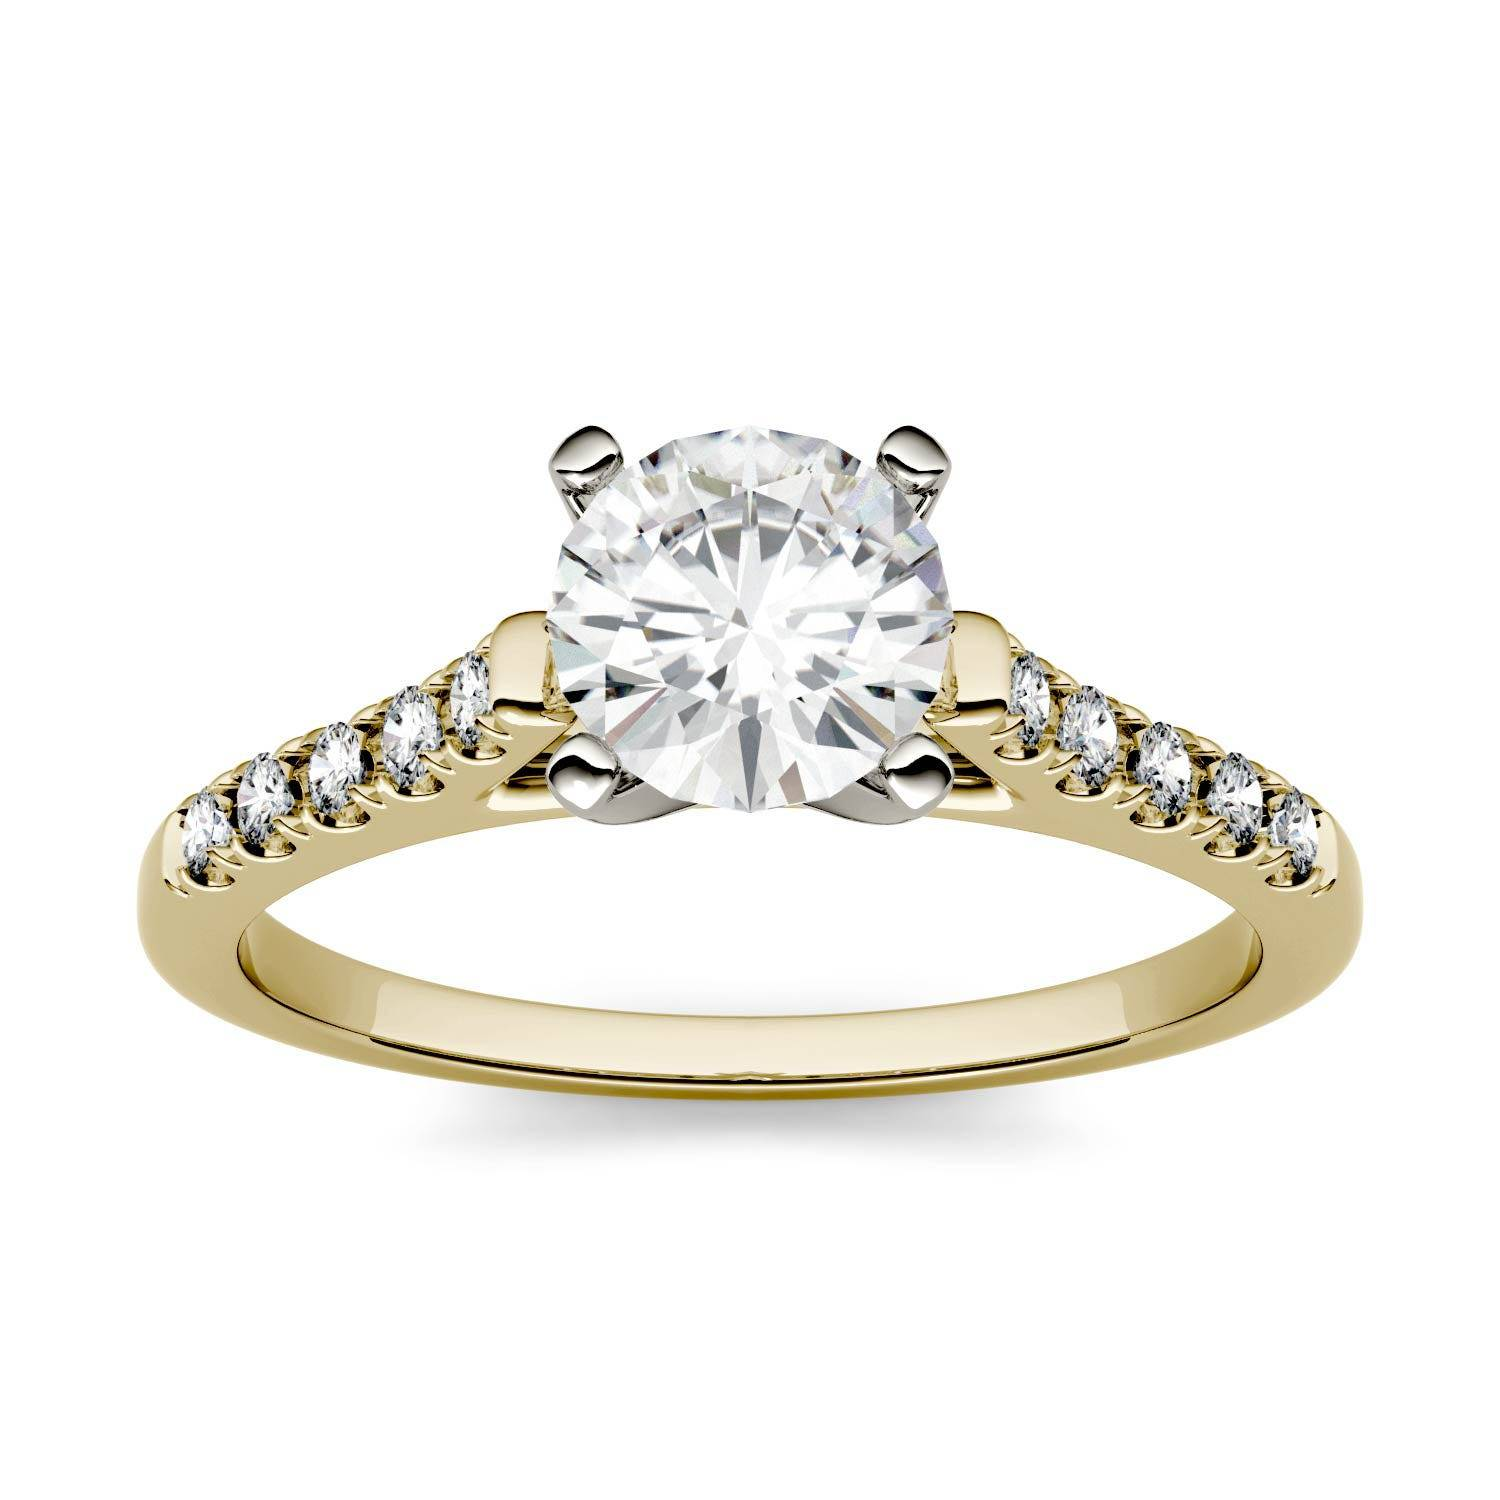 Charles & Colvard Solitaire with Side Accents Engagement Ring in 14K Yellow Gold, Size: 9, 1.15CTW Round Forever One - Near-Colorless Moissanite Charles & Colvard  - Yellow Gold - Size: 9